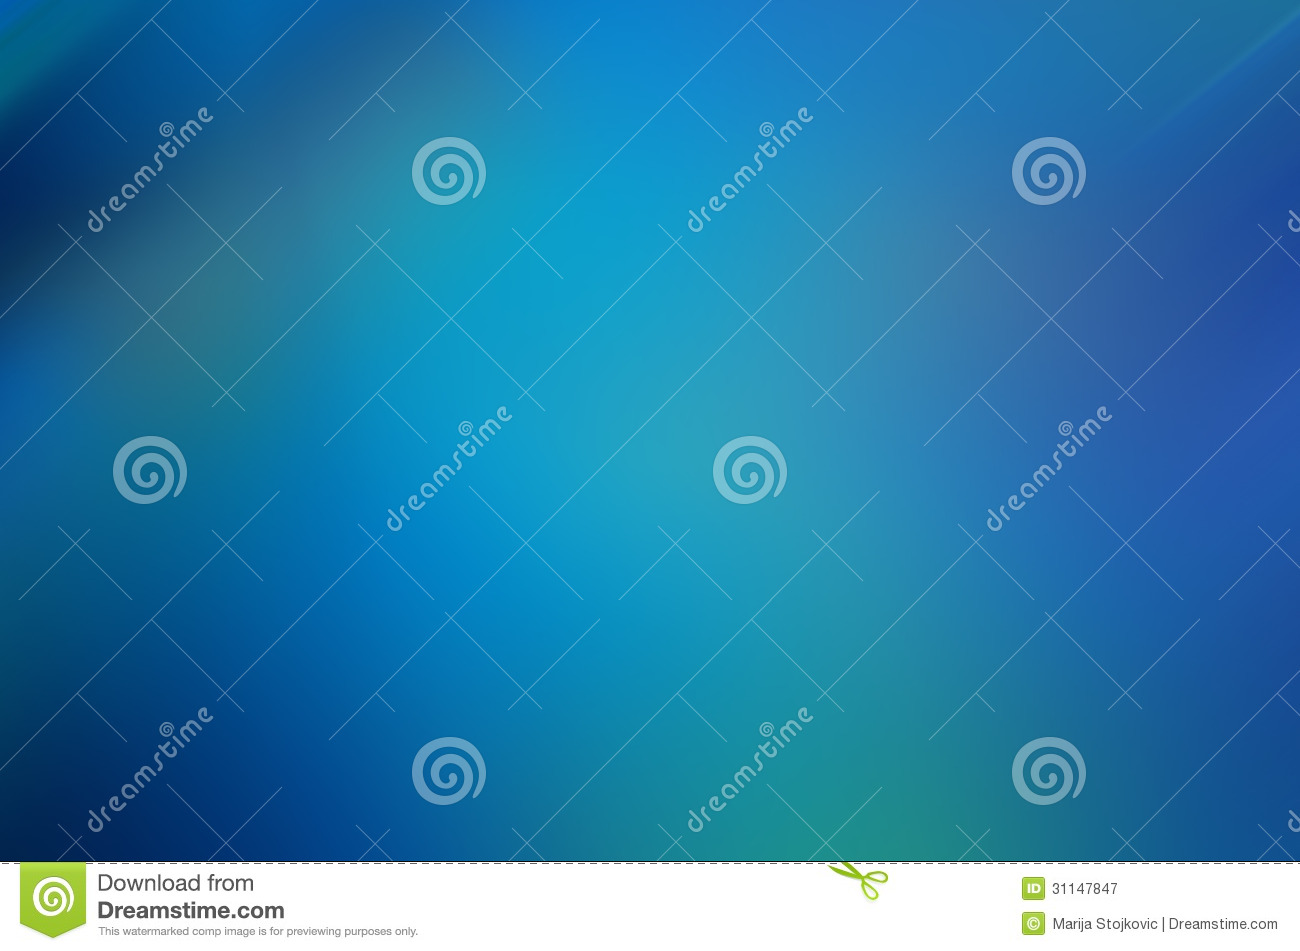 Cobalt Blue Abstract Wallpaper: Blue Blurred Abstract Background Royalty Free Stock